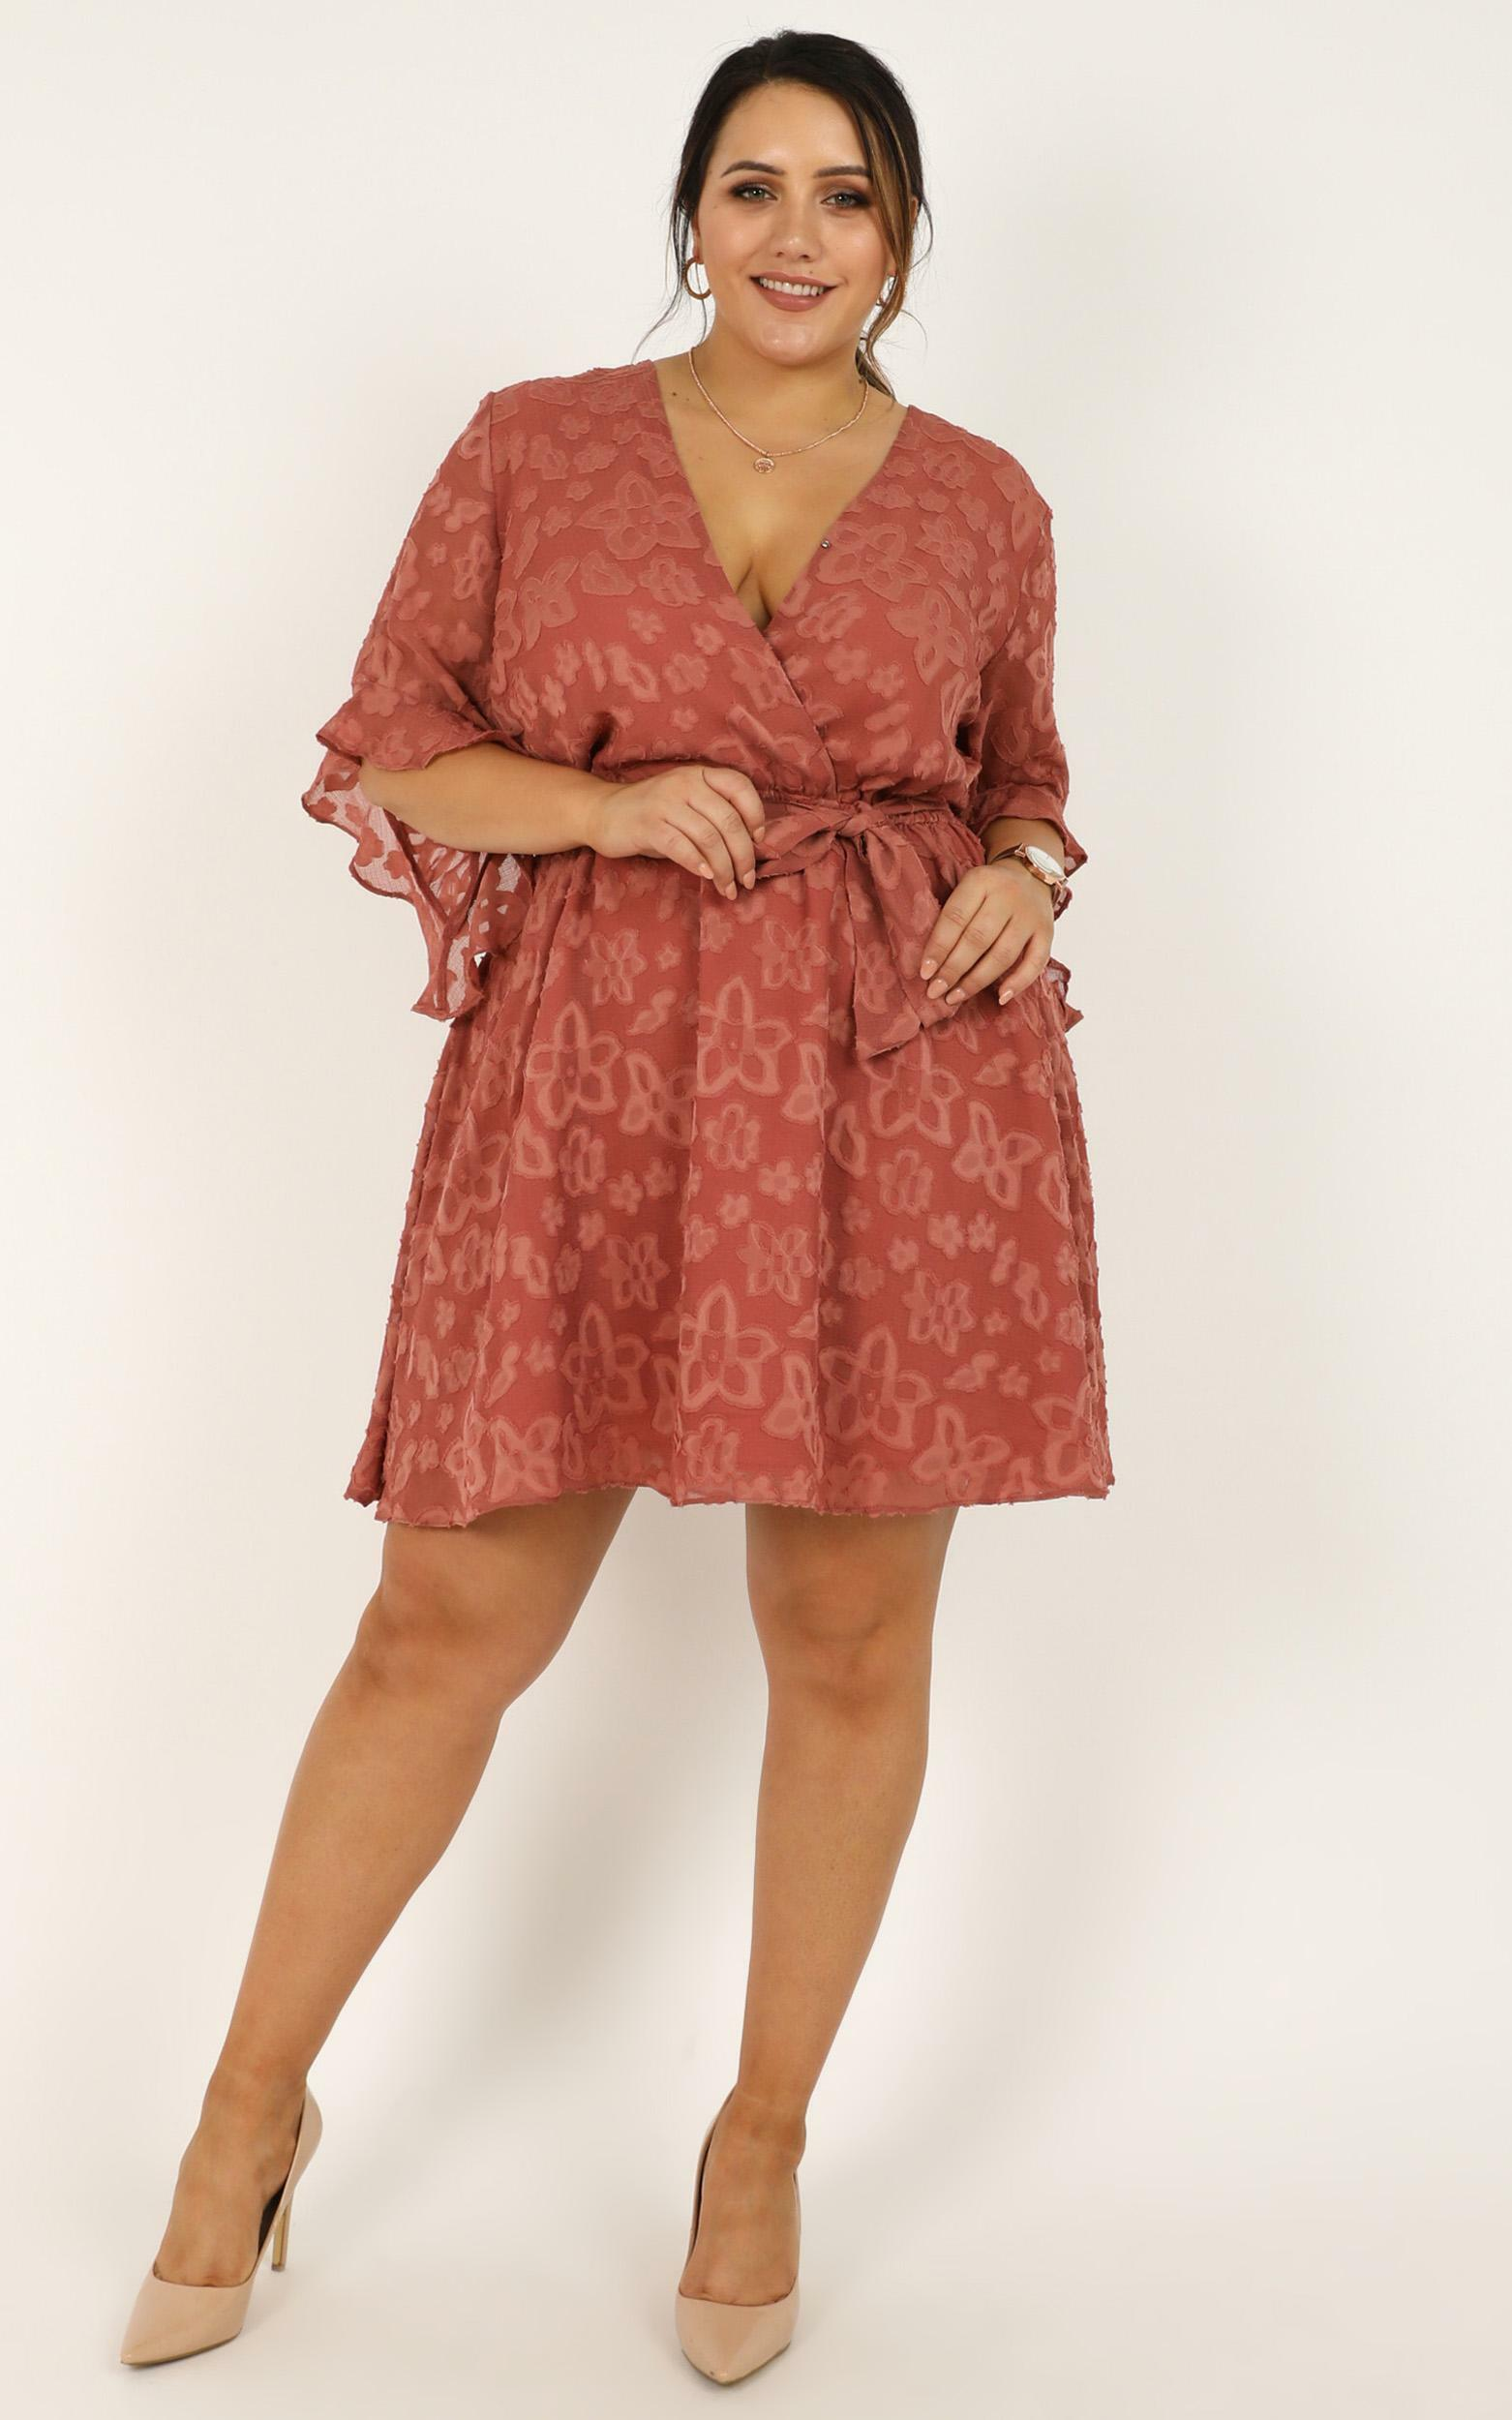 Everyday People Dress In blush - 20 (XXXXL), Blush, hi-res image number null